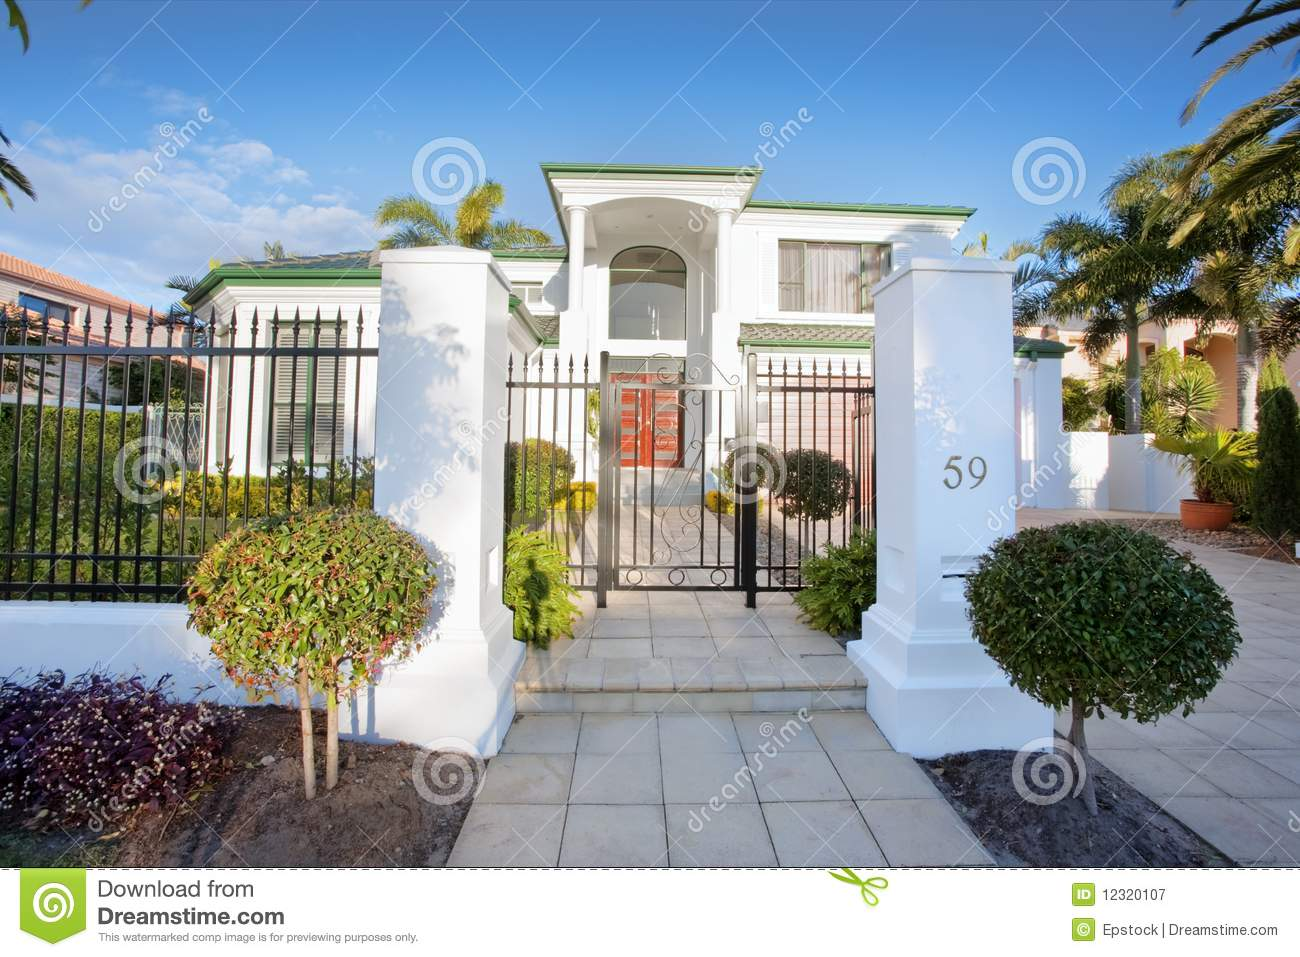 Royalty free stock photo download luxury mansion house front